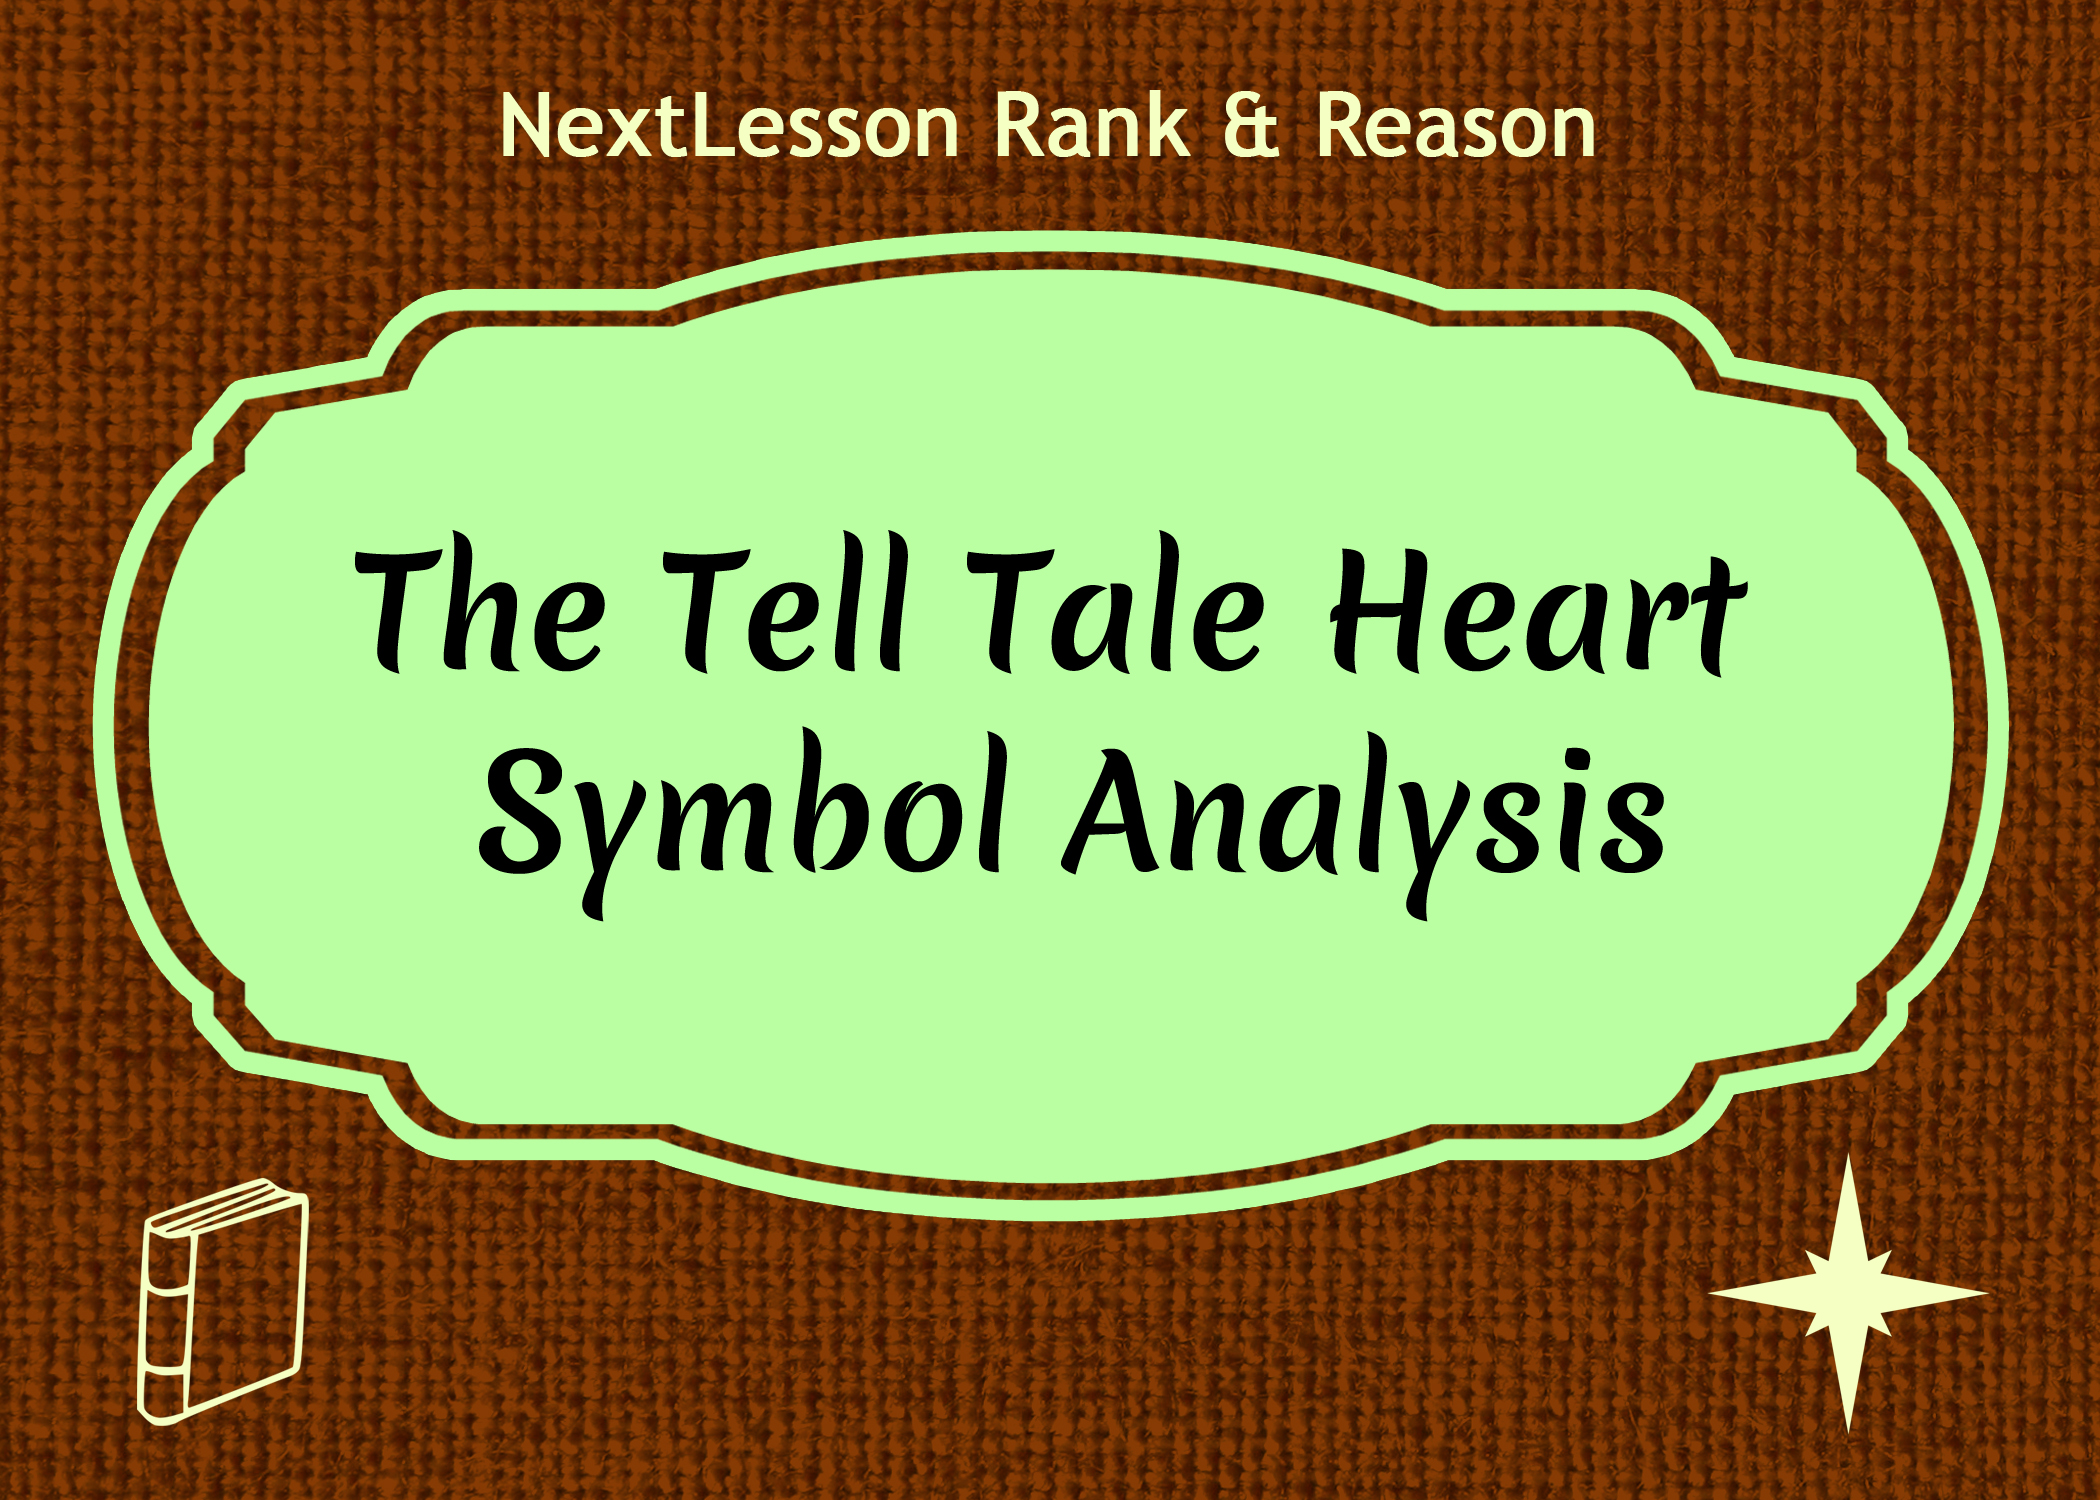 The Tell Tale Heart Symbol Analysis Nextlesson